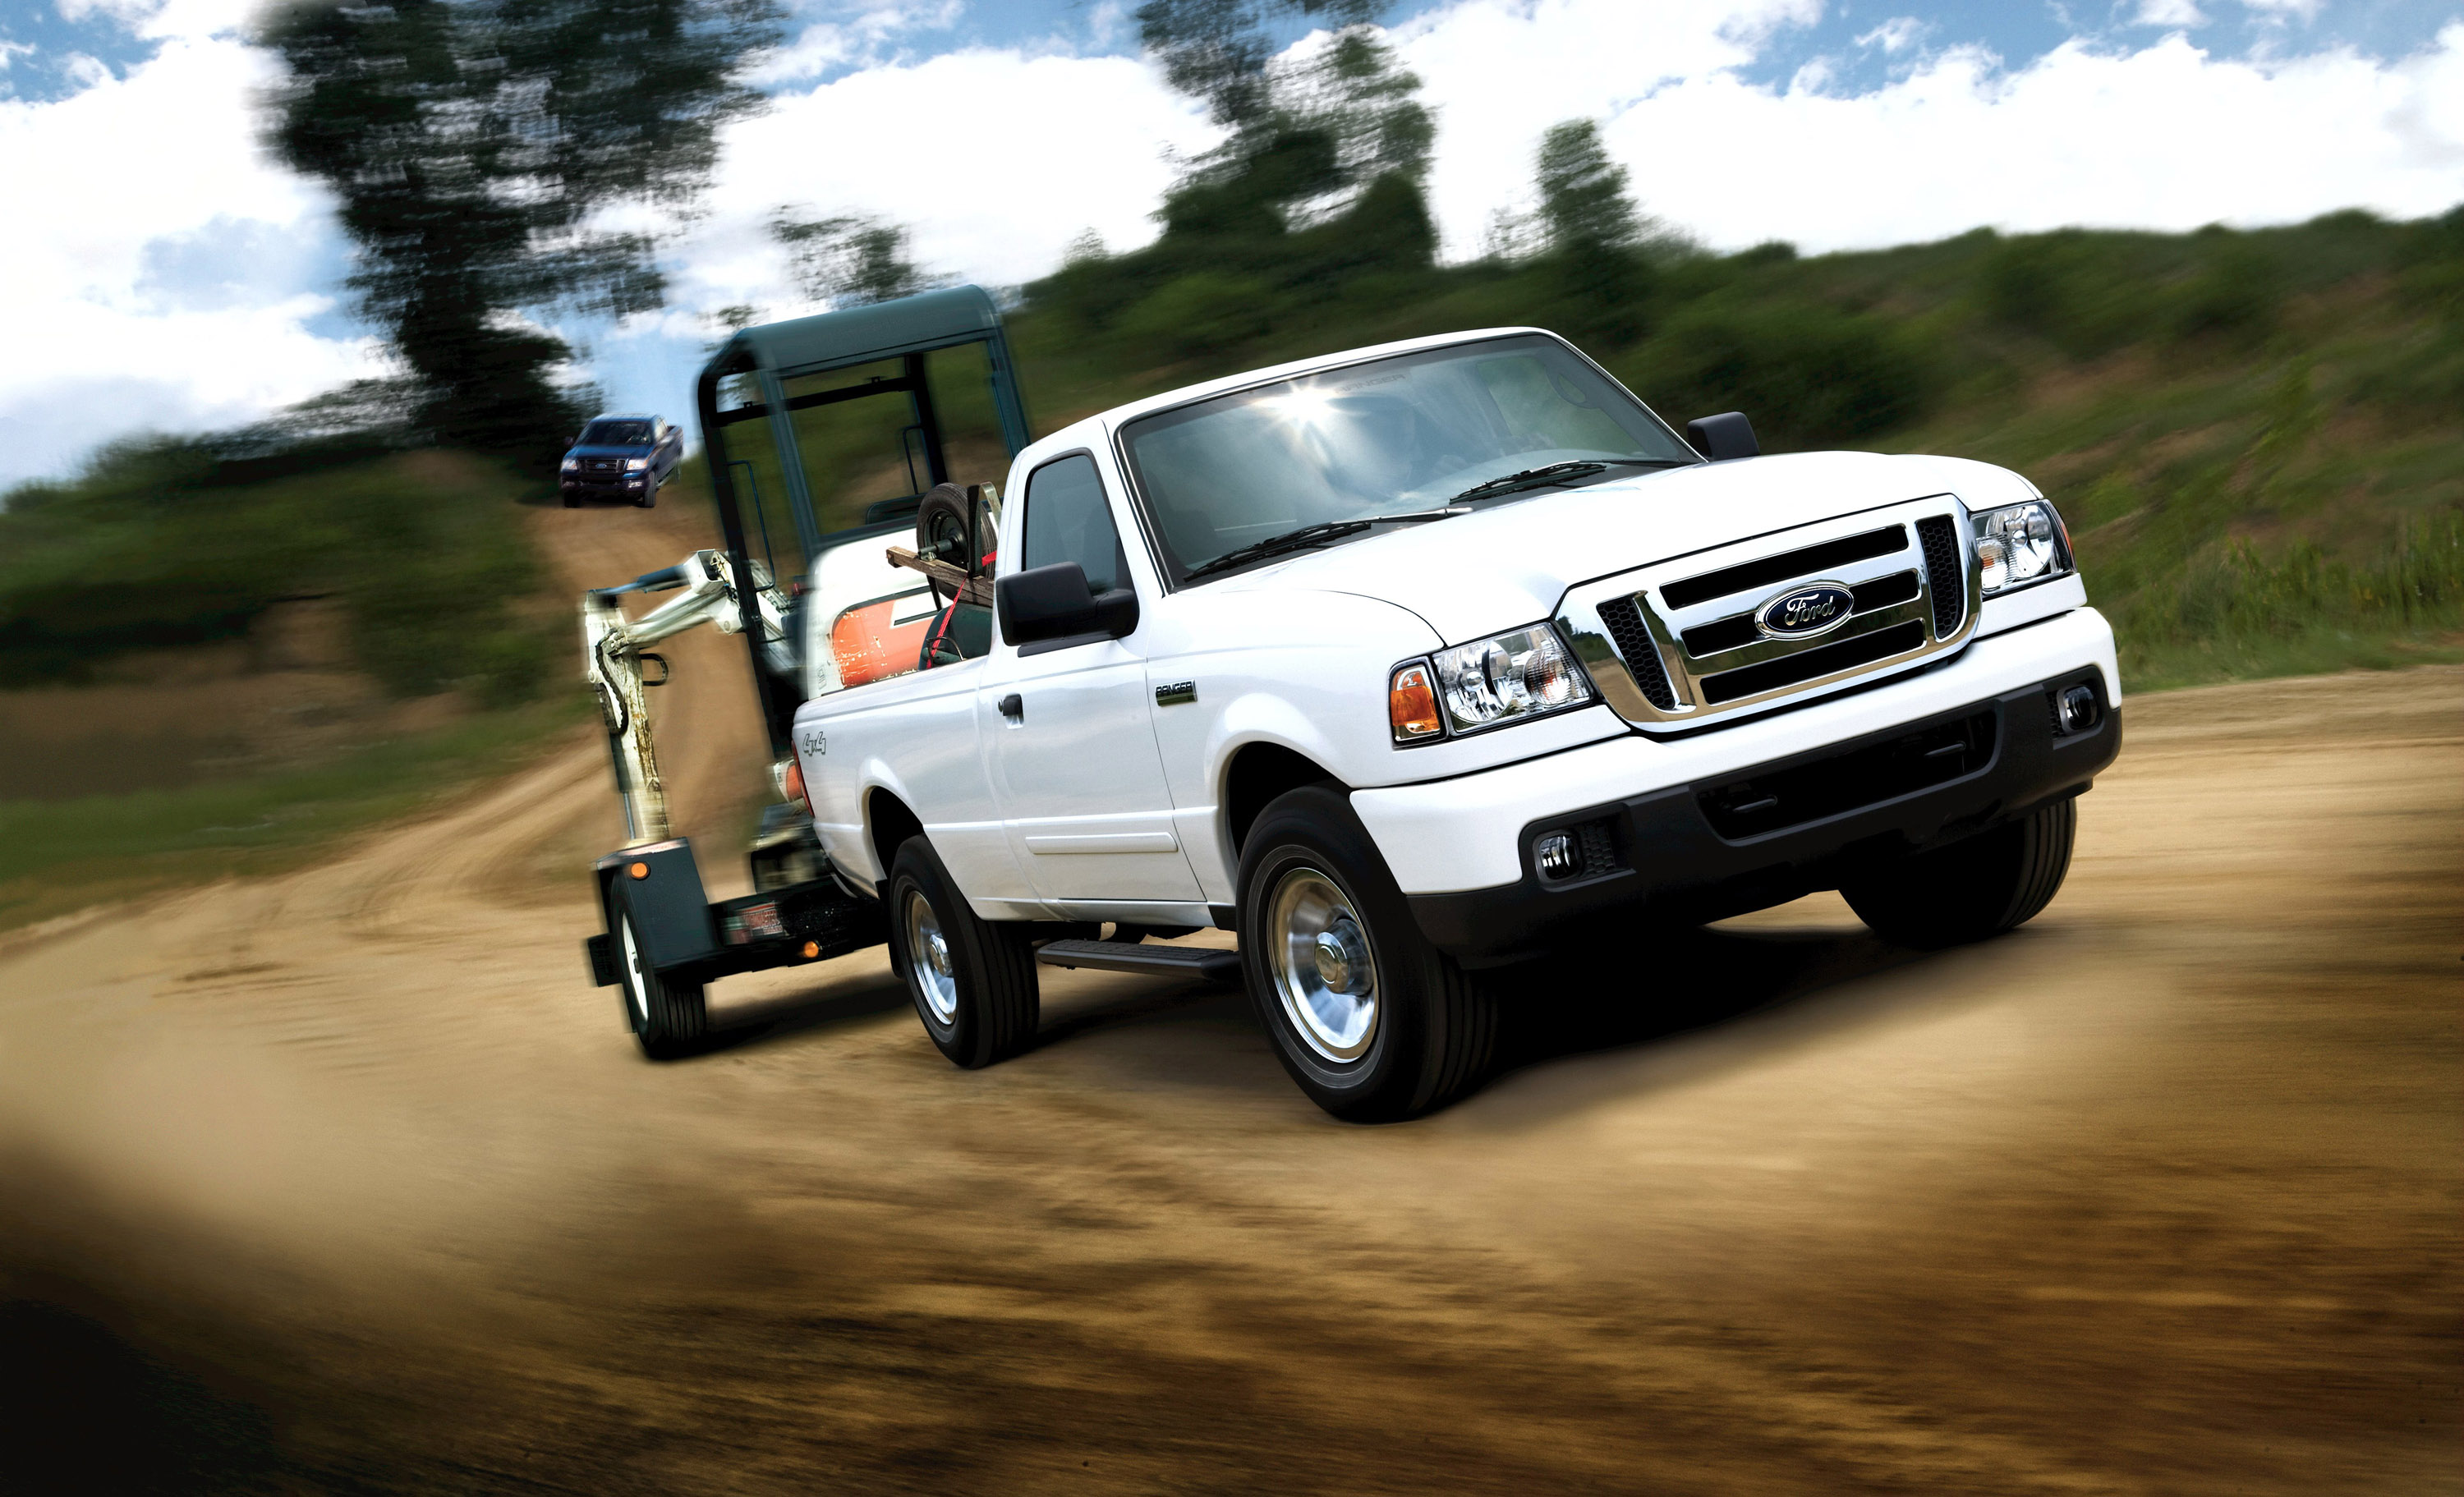 2007 ford ranger top speed rh topspeed com Ford Ranger Towing Capacity Chart 2011 Ford Ranger Towing Guide